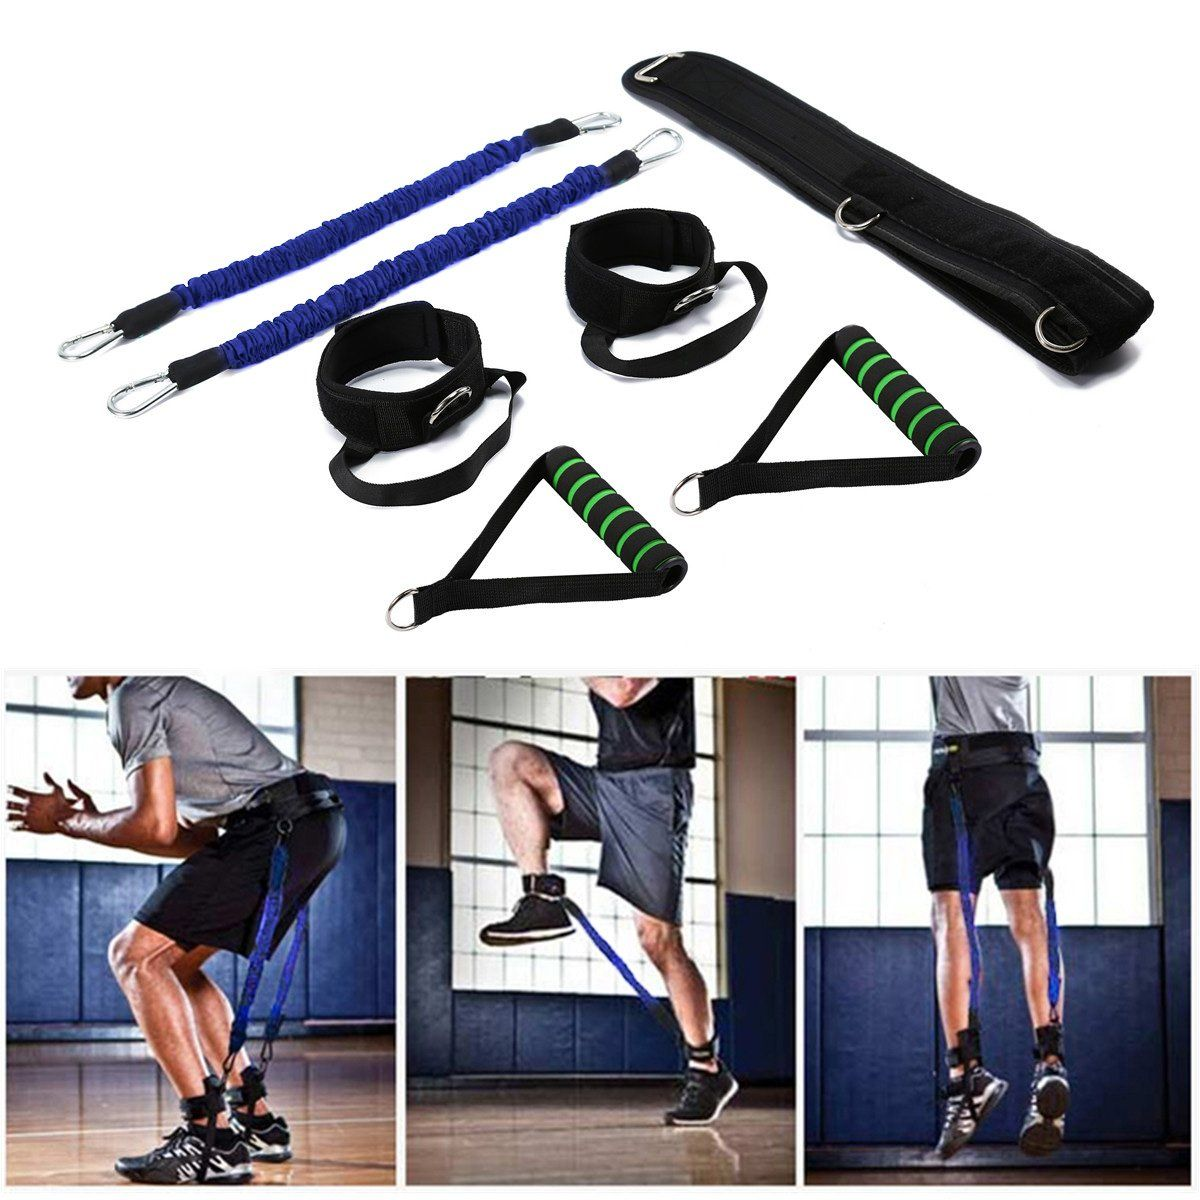 Wowelife Vertical Jump Trainer Equipment Bounce Trainer Device Leg Strength Training Bands For Agility Vertical Jump Training No Equipment Workout Jump Workout